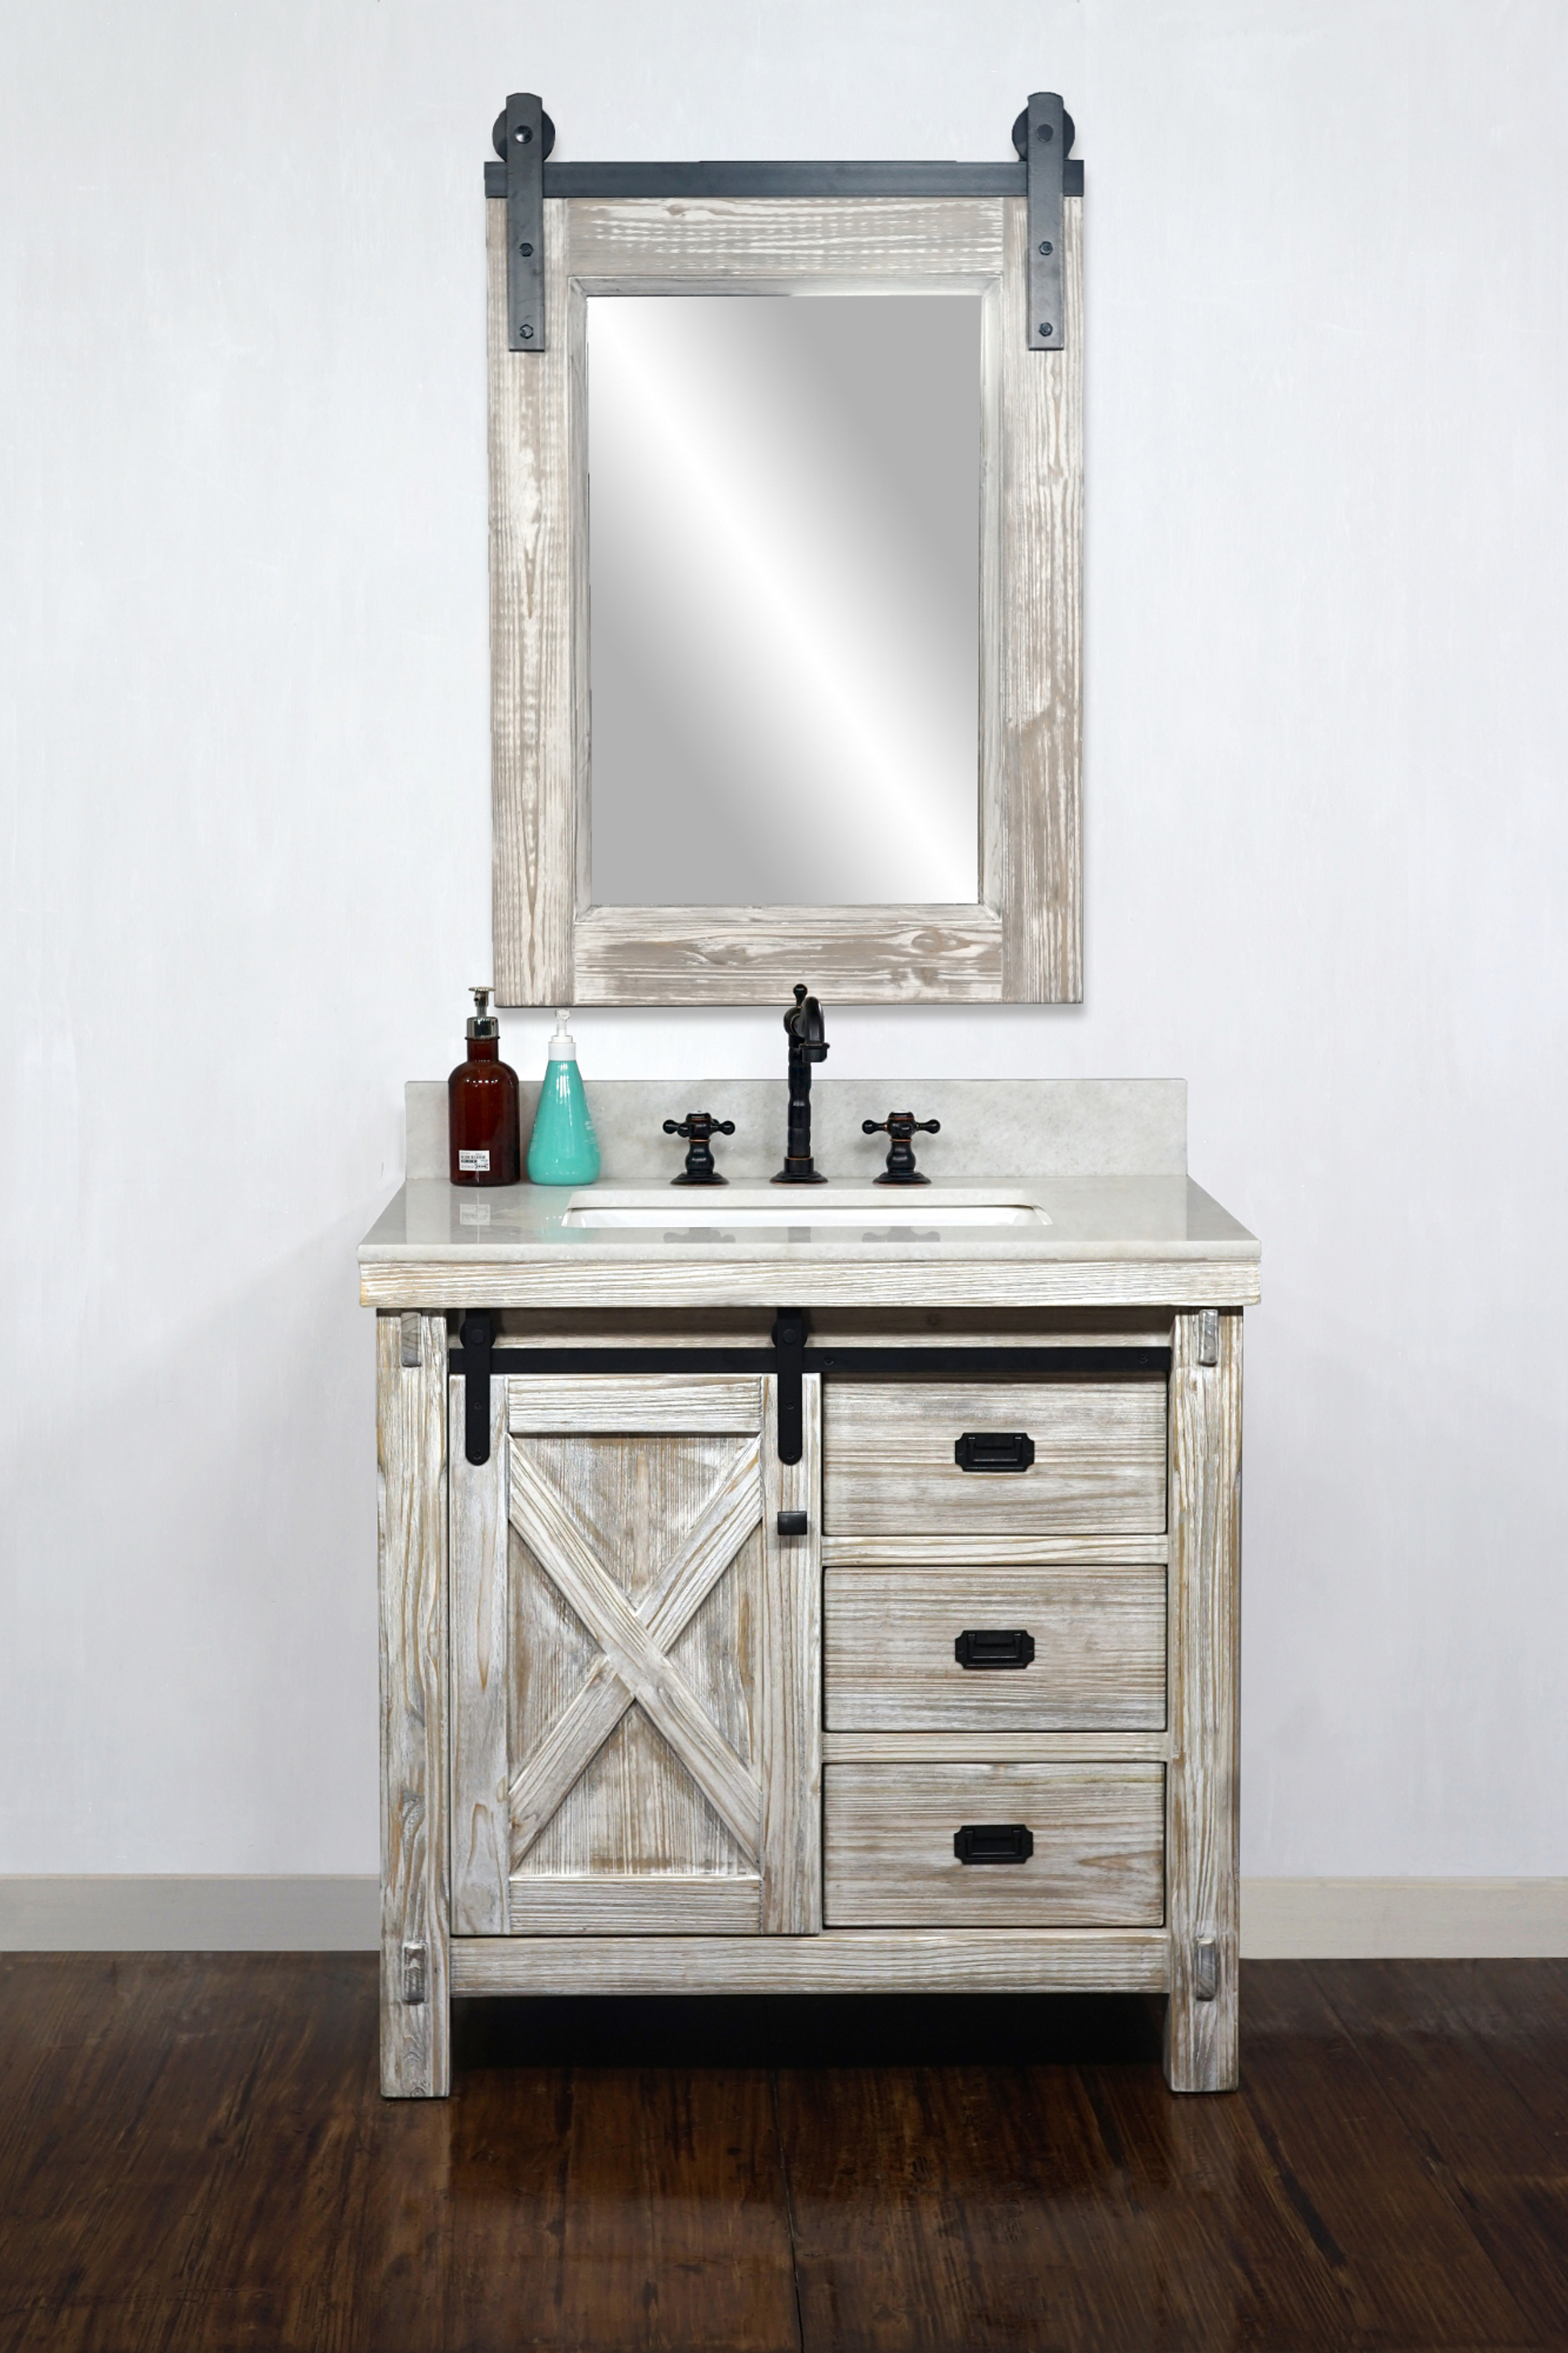 "36"" Rustic Solid Fir Barn Door Style Single Sink Vanity in White Washed - No Faucet with Countertop Options"